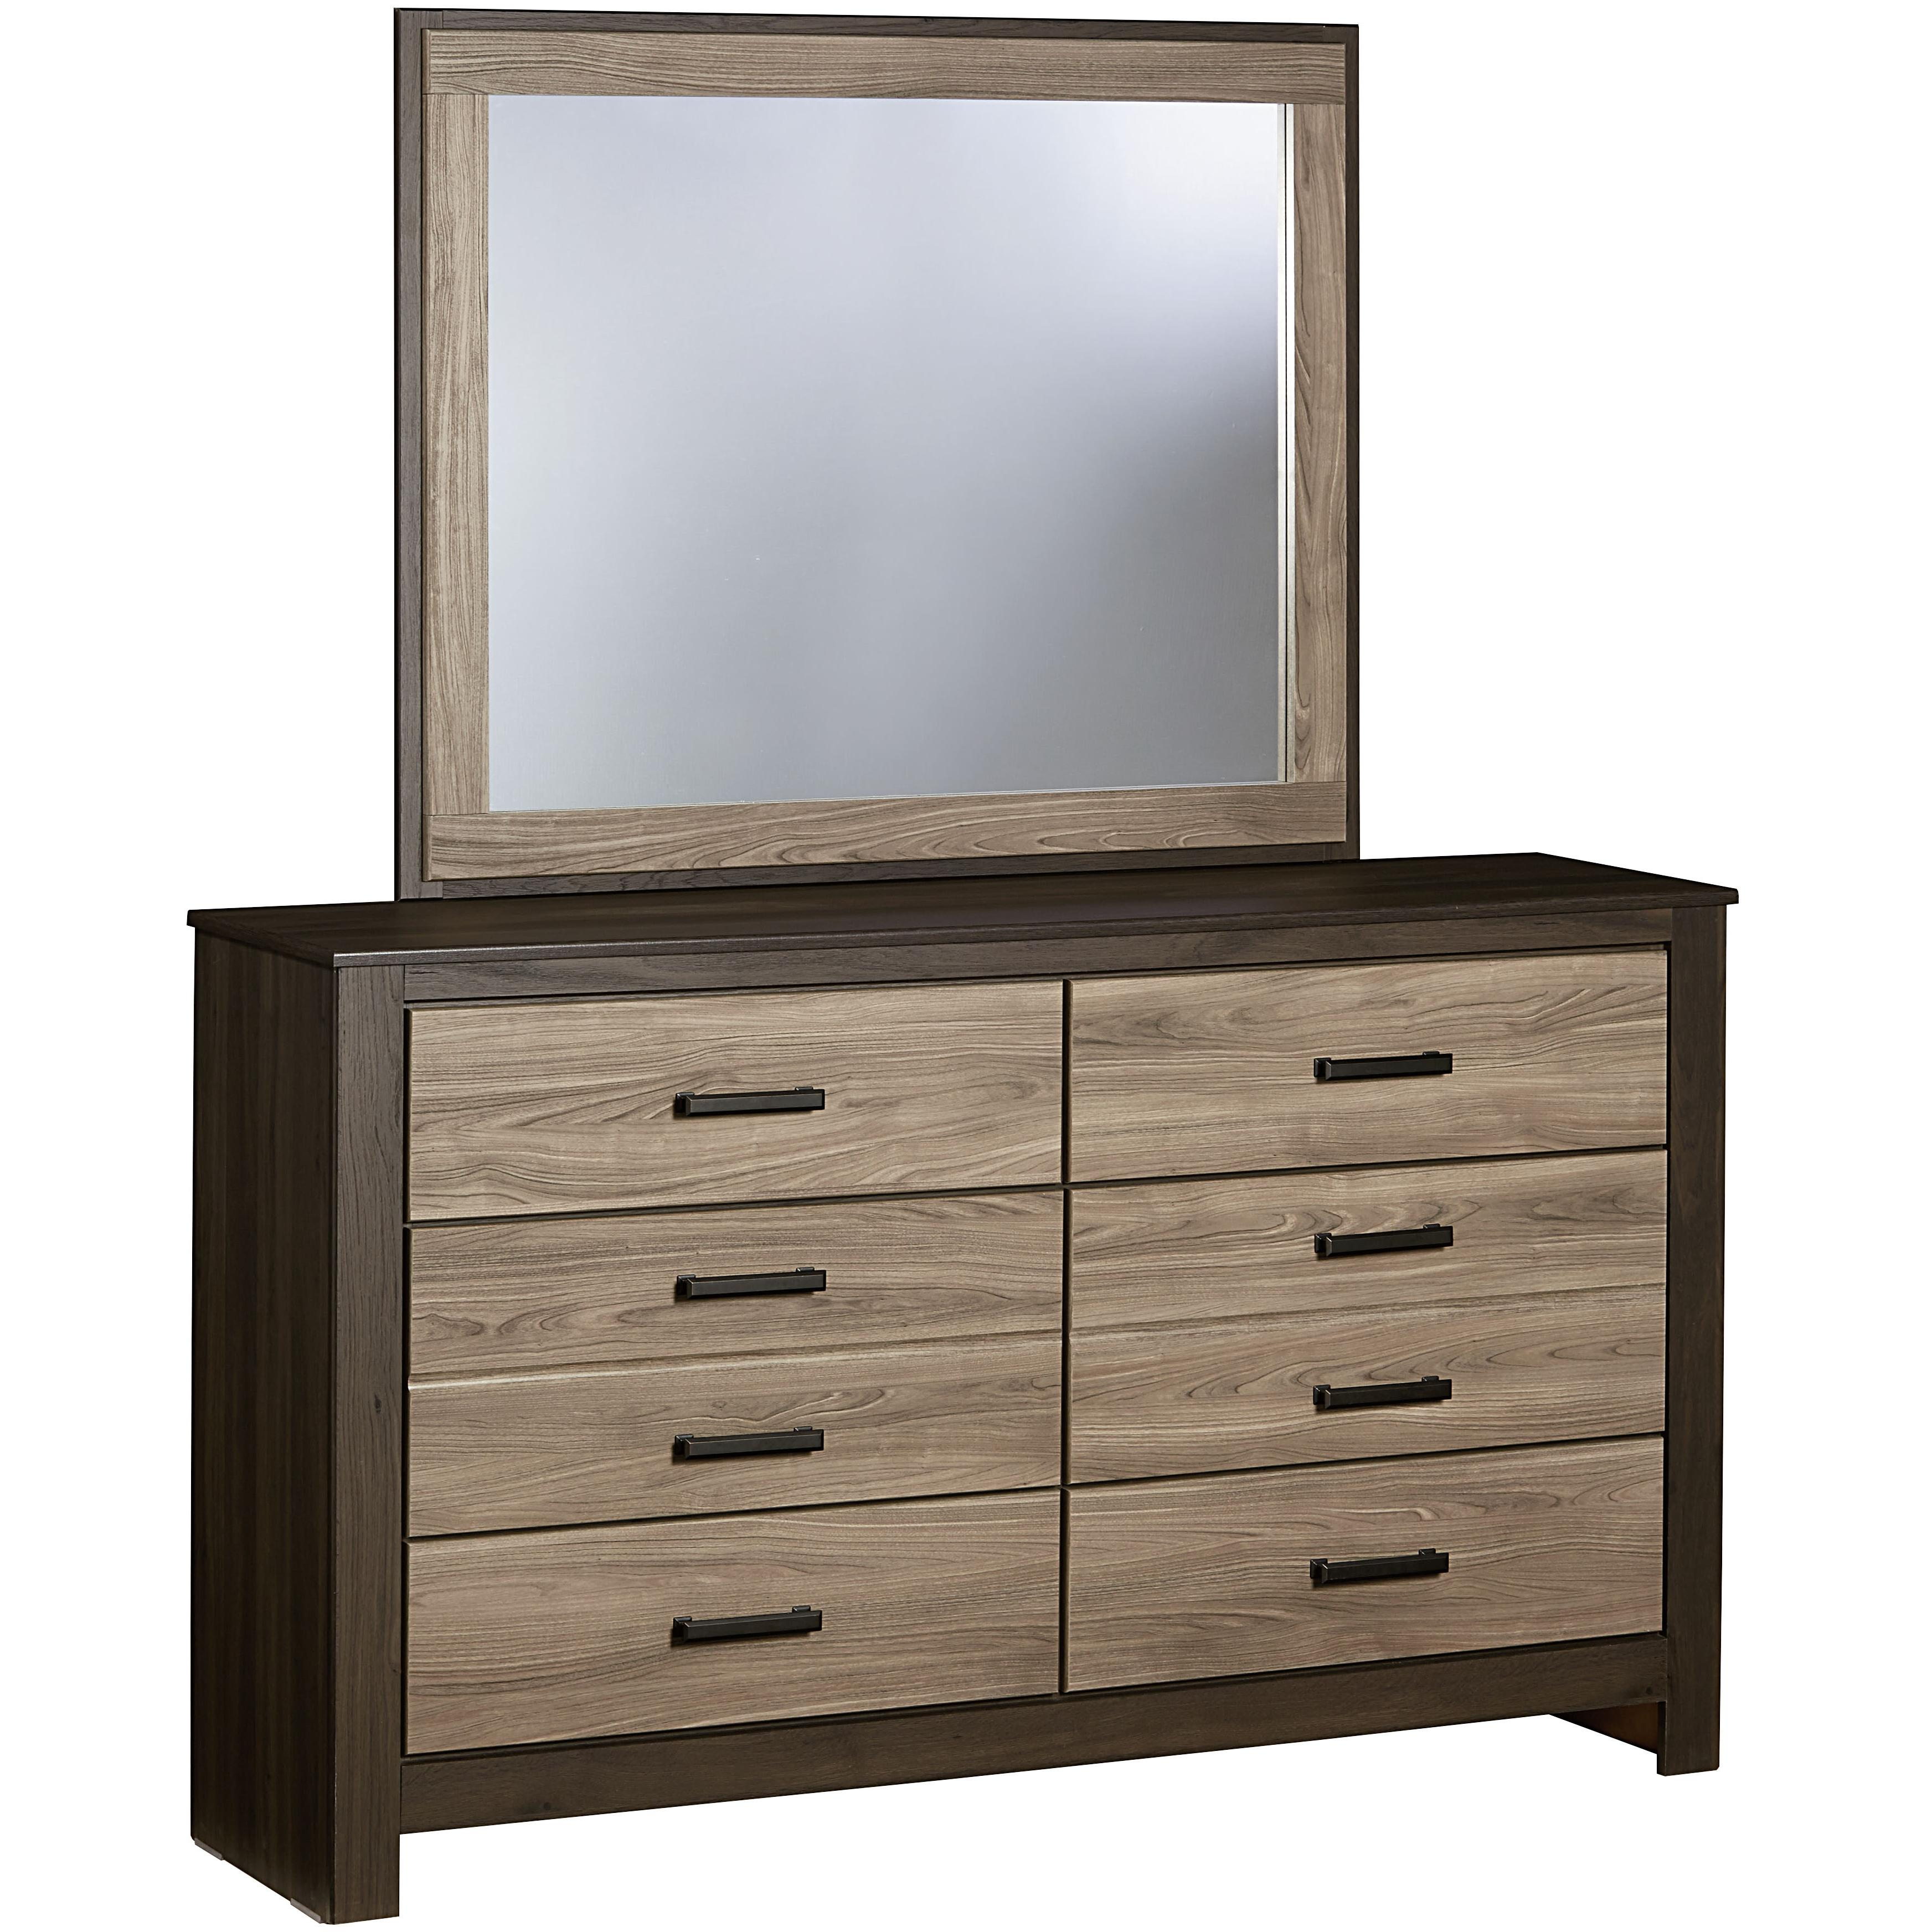 Dresser with 6 Drawers and Mirror by Standard Furniture